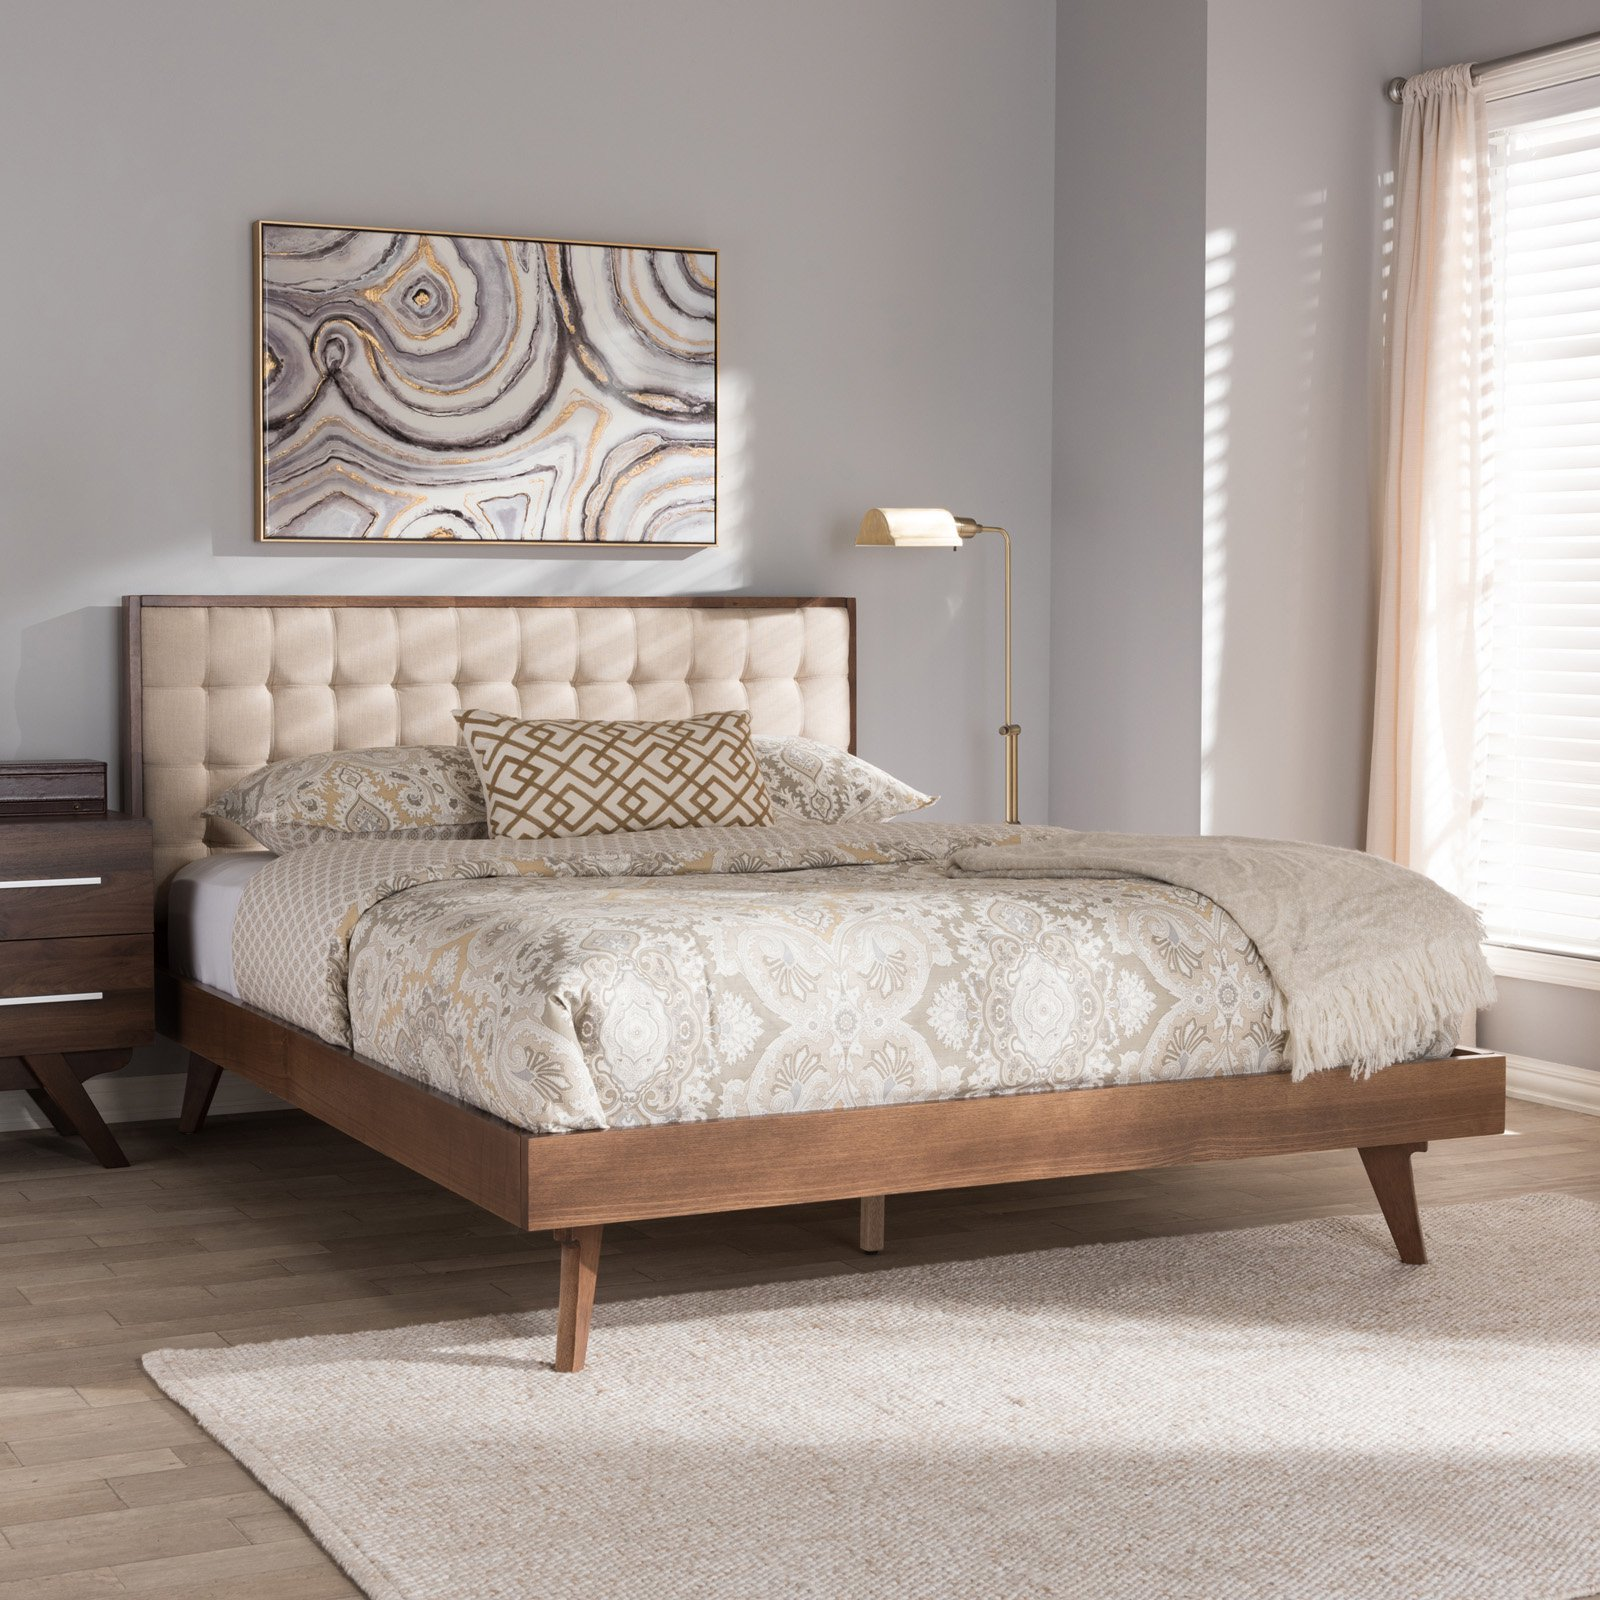 Baxton Studio Soloman Mid-Century Modern Light Beige Fabric and Walnut Brown Finished Wood Platform Bed, Multiple Sizes